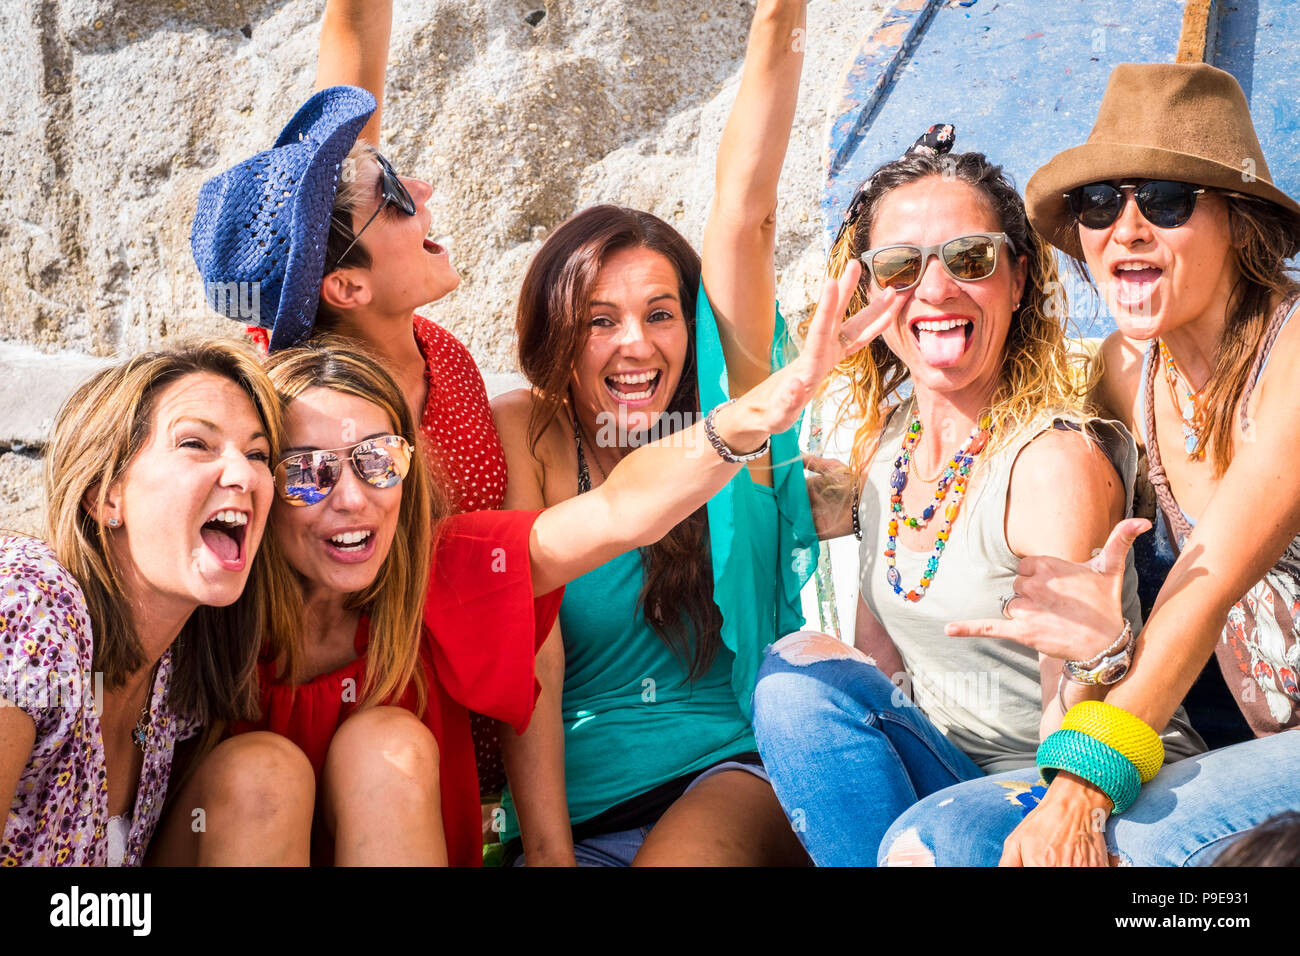 group of crazy nice beautiful caucasian girls outdoor under the summer sun doing a party all together. people having fun iall together oncept lifestyl - Stock Image